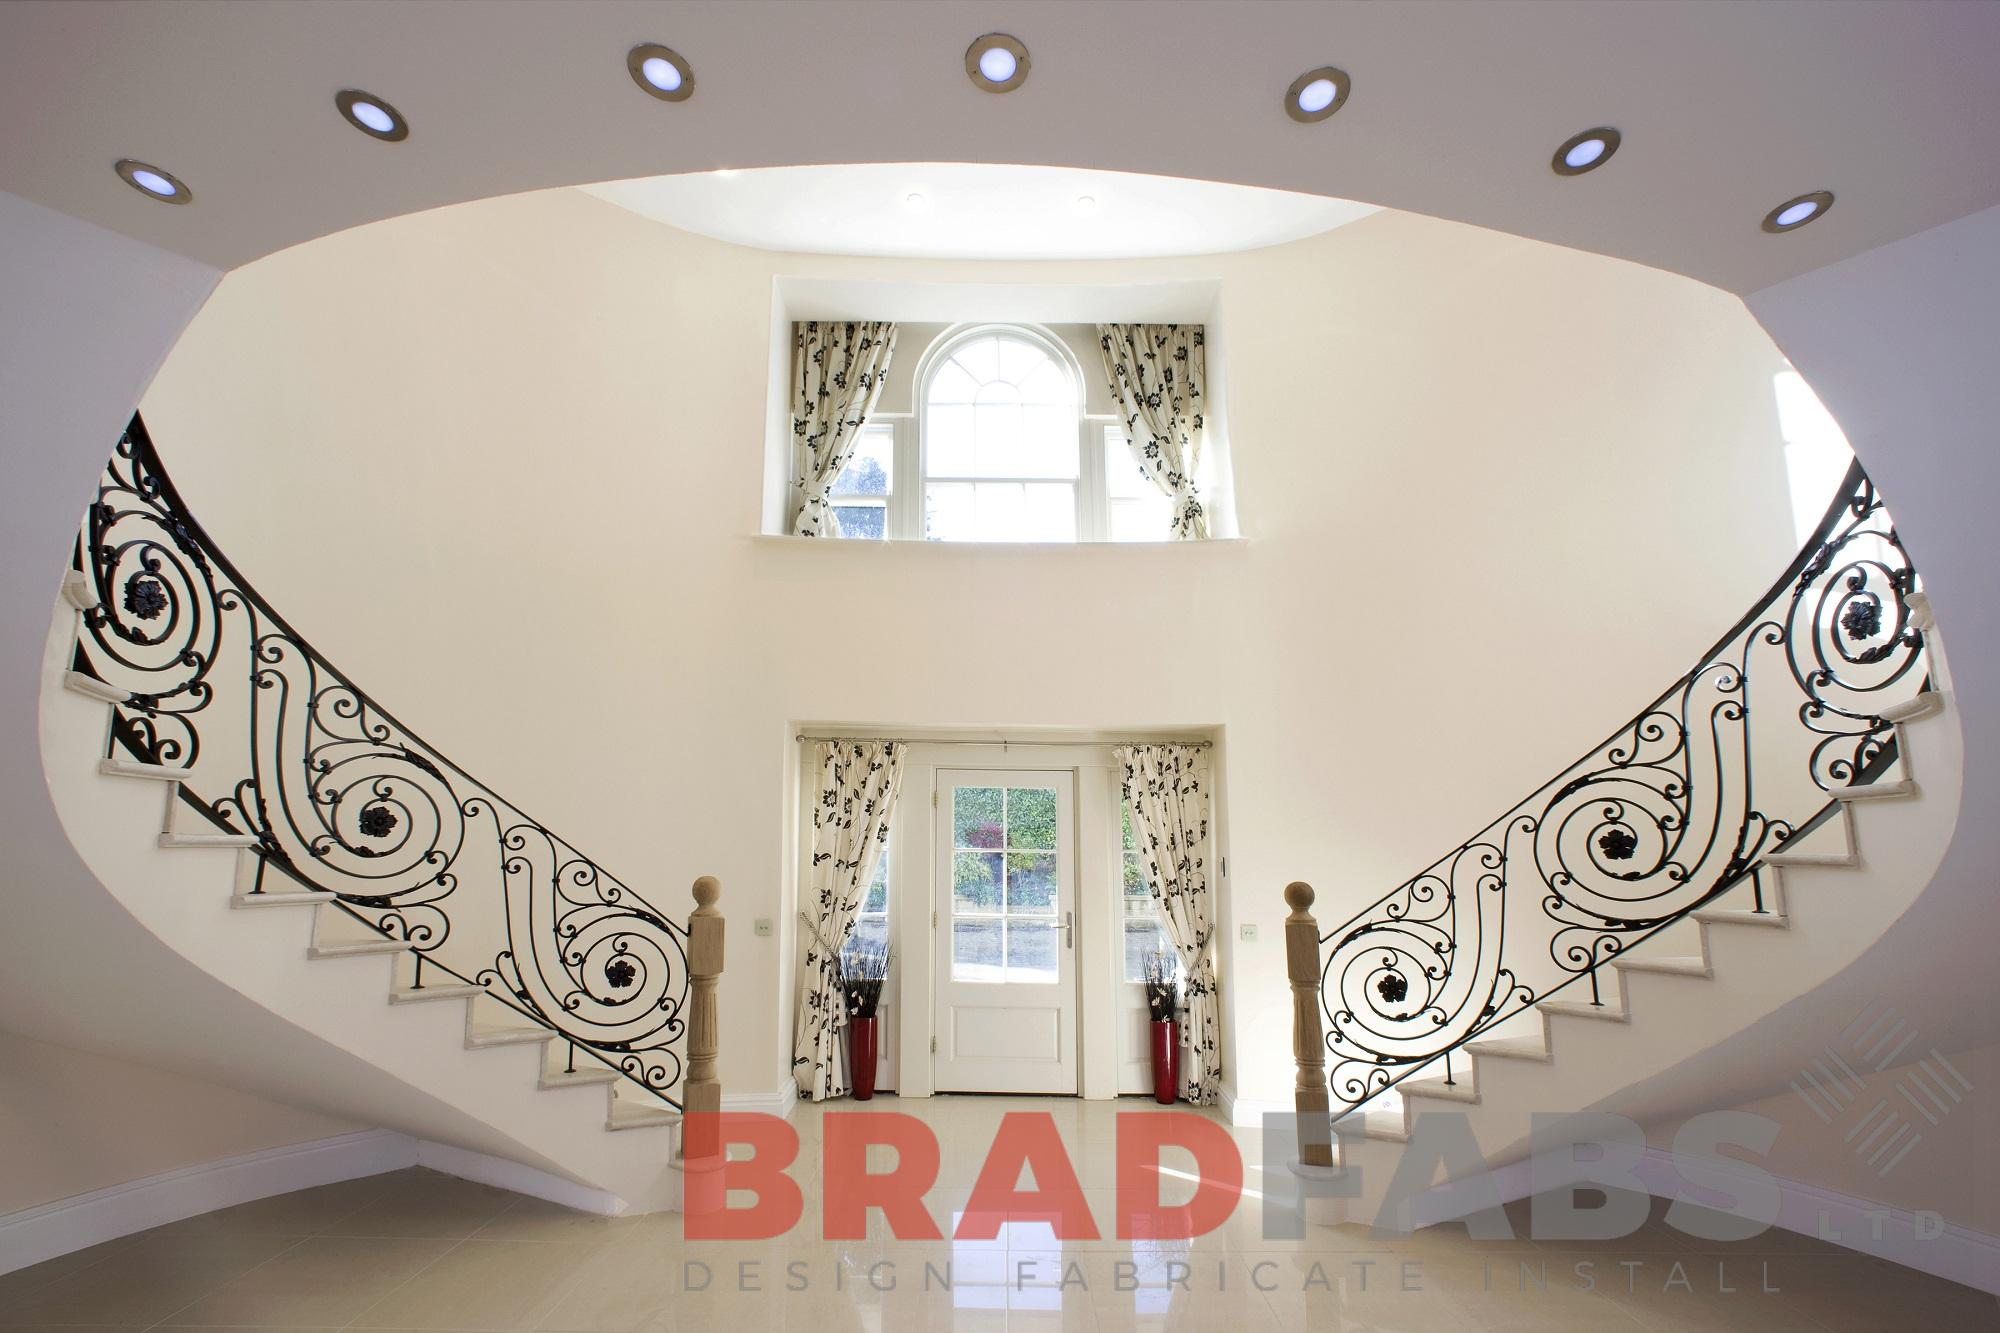 Curved high quality helix staircase with ornate balustrade